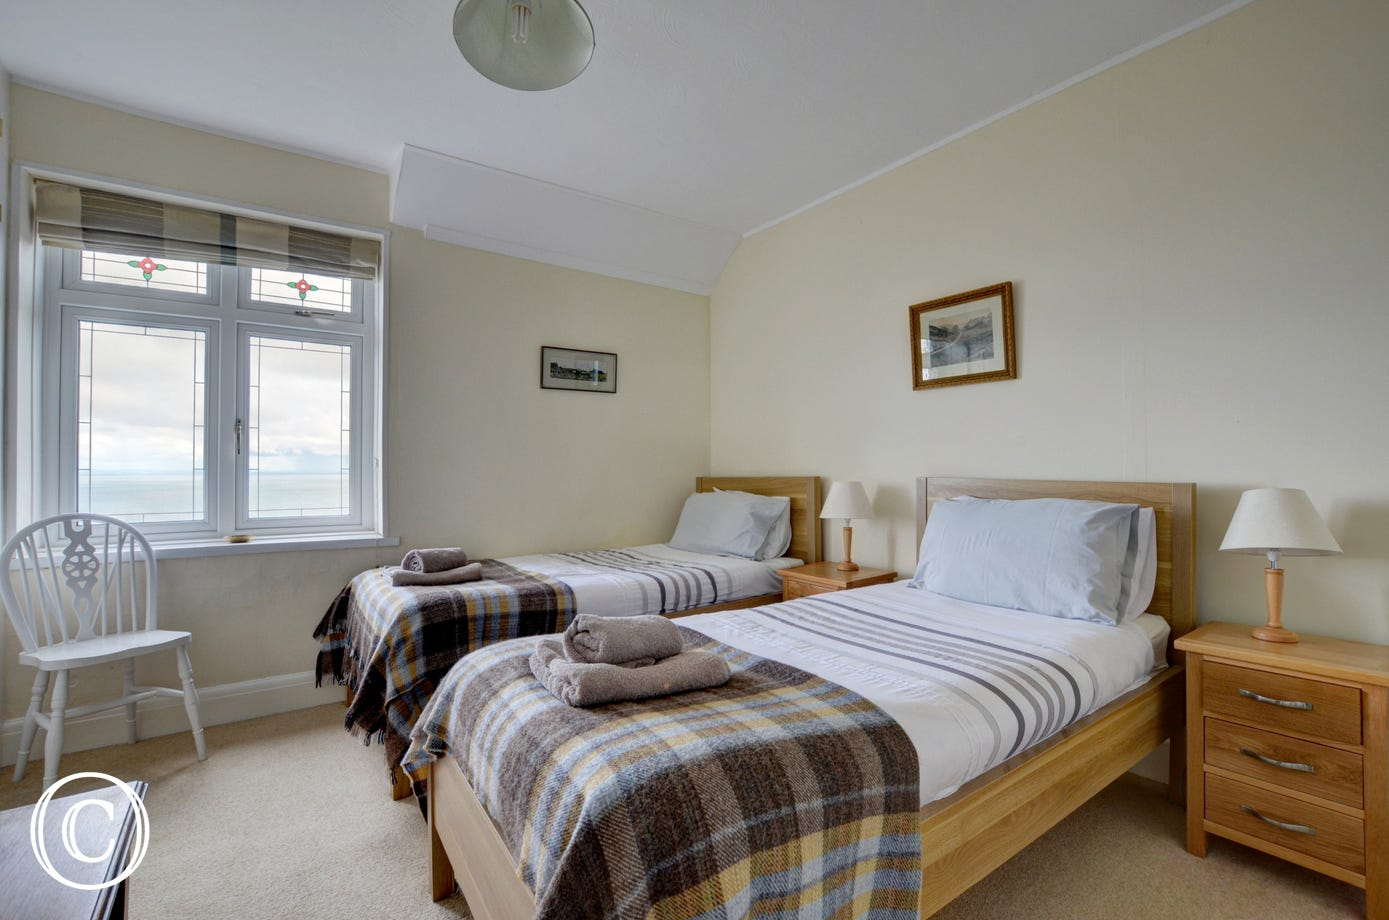 This delightful twin bedroom offers views of the surrounding countryside and out to sea